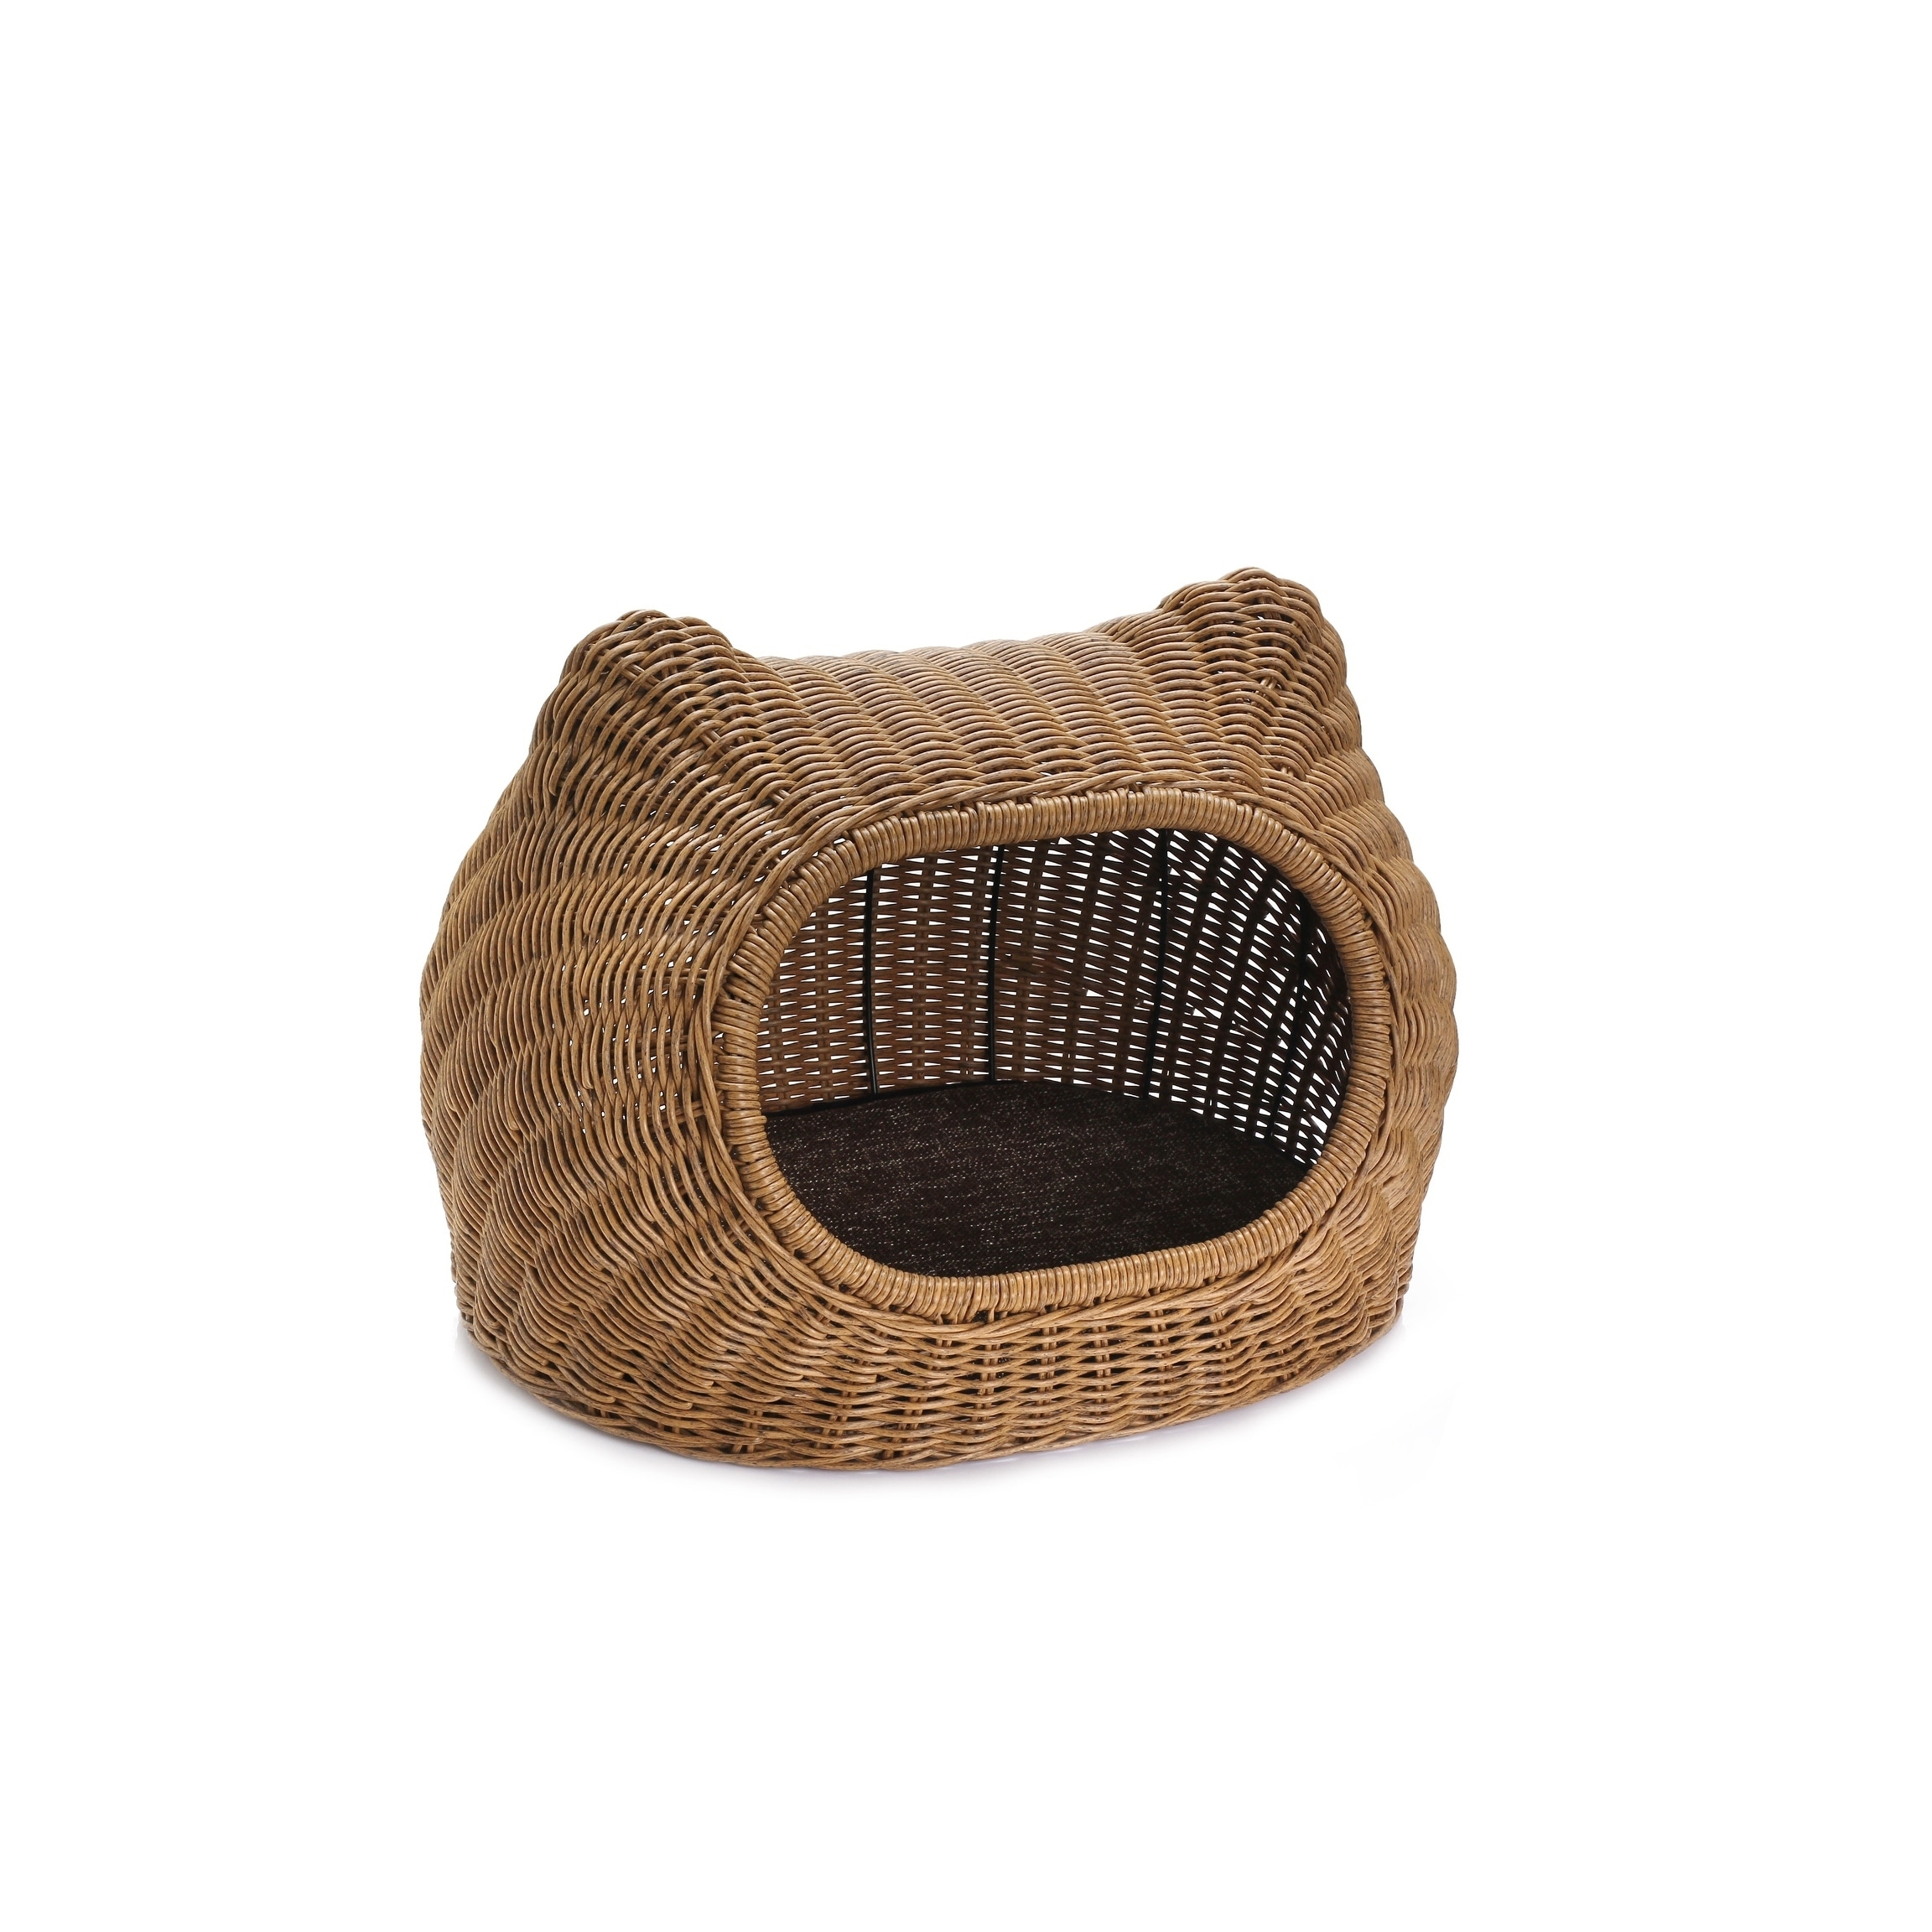 Rattan Wicker Style Indoor Outdoor Pet Bed Cave With Metal Frame For Small Dogs Or Cats Overstock 27550863